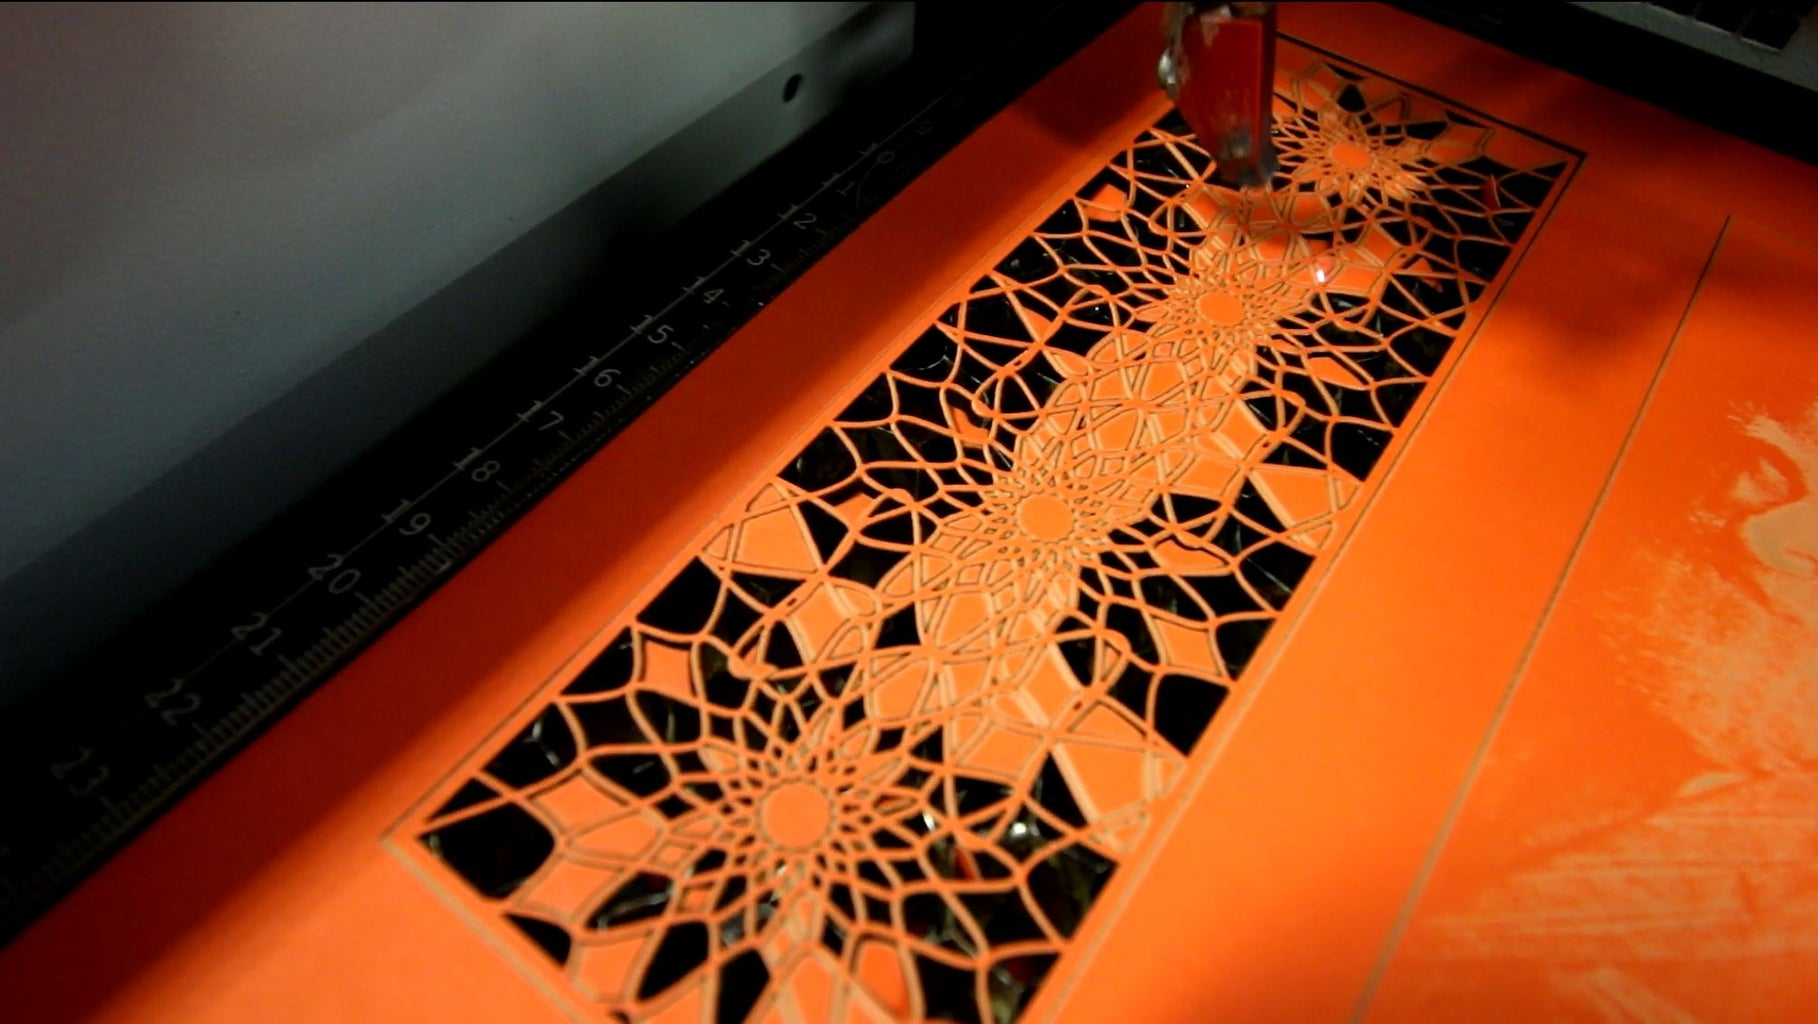 Coloured Paper - Laser Cut and Engrave